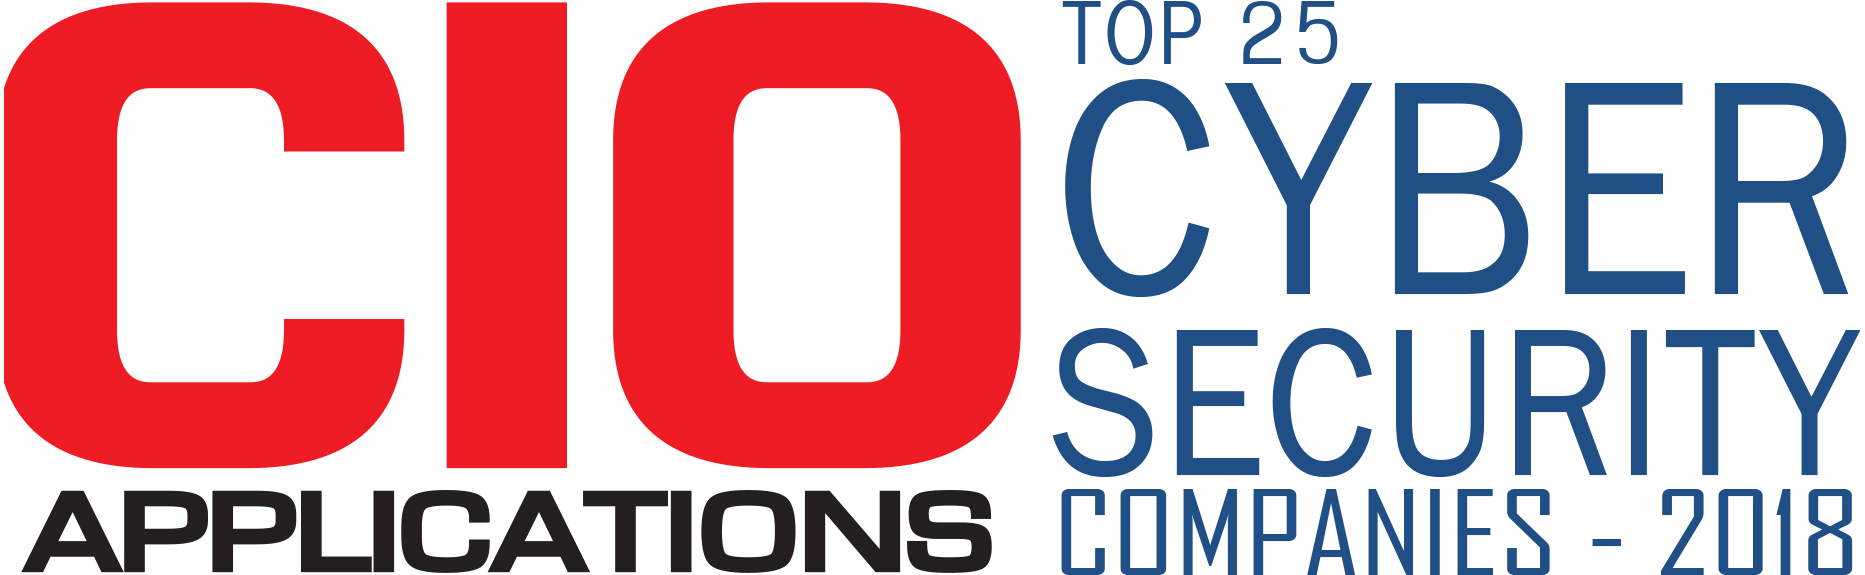 Top 25 Cyber Security Companies - 2018